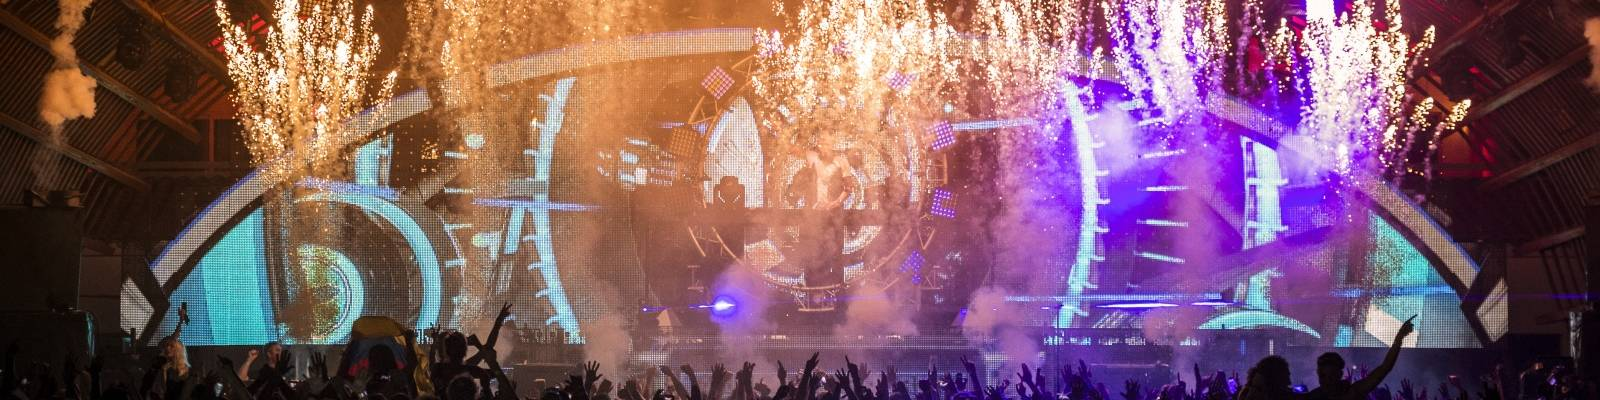 Photos: Armin Ushuaia Closing Party